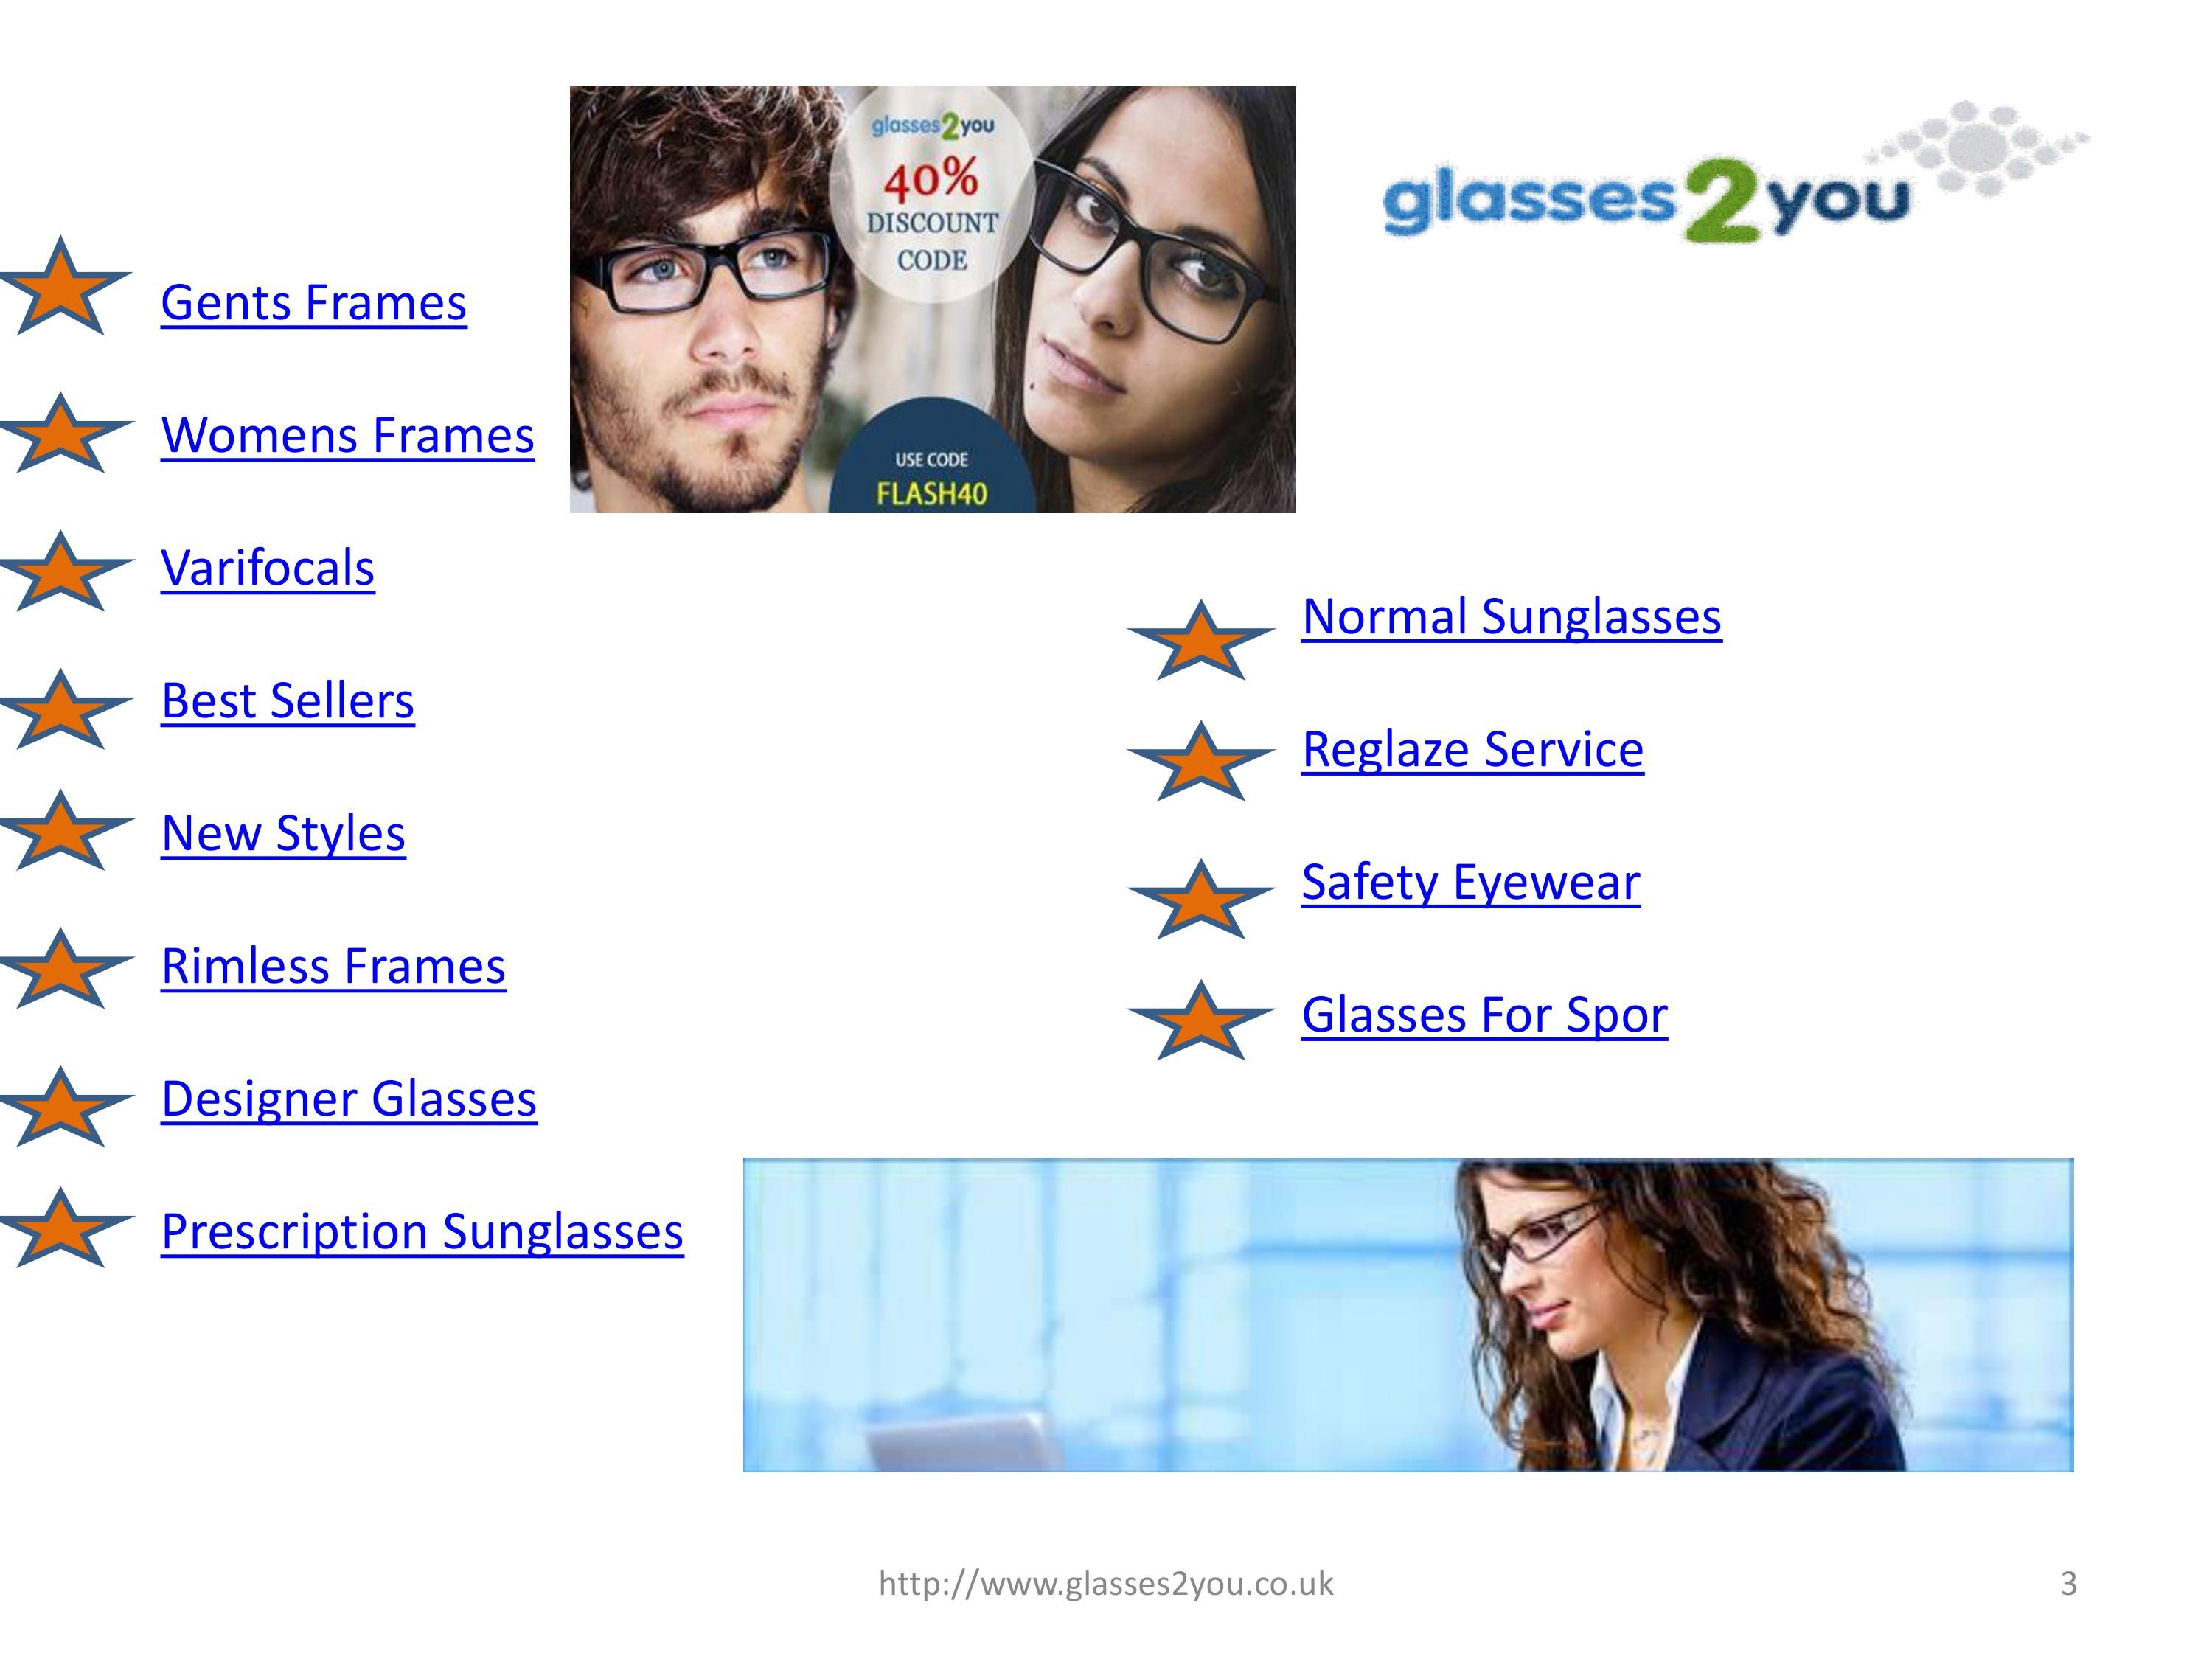 Our Company is operating from UK and we are running our online operations by selling top of the class online glasses to our customers on discounted rates and prices. We have various ranges of glasses for customers to select from our online portal.  Phone:  01489572340  Email:customerservices@glasses2you.co.uk  Website:http://www.glasses2you.co.uk/